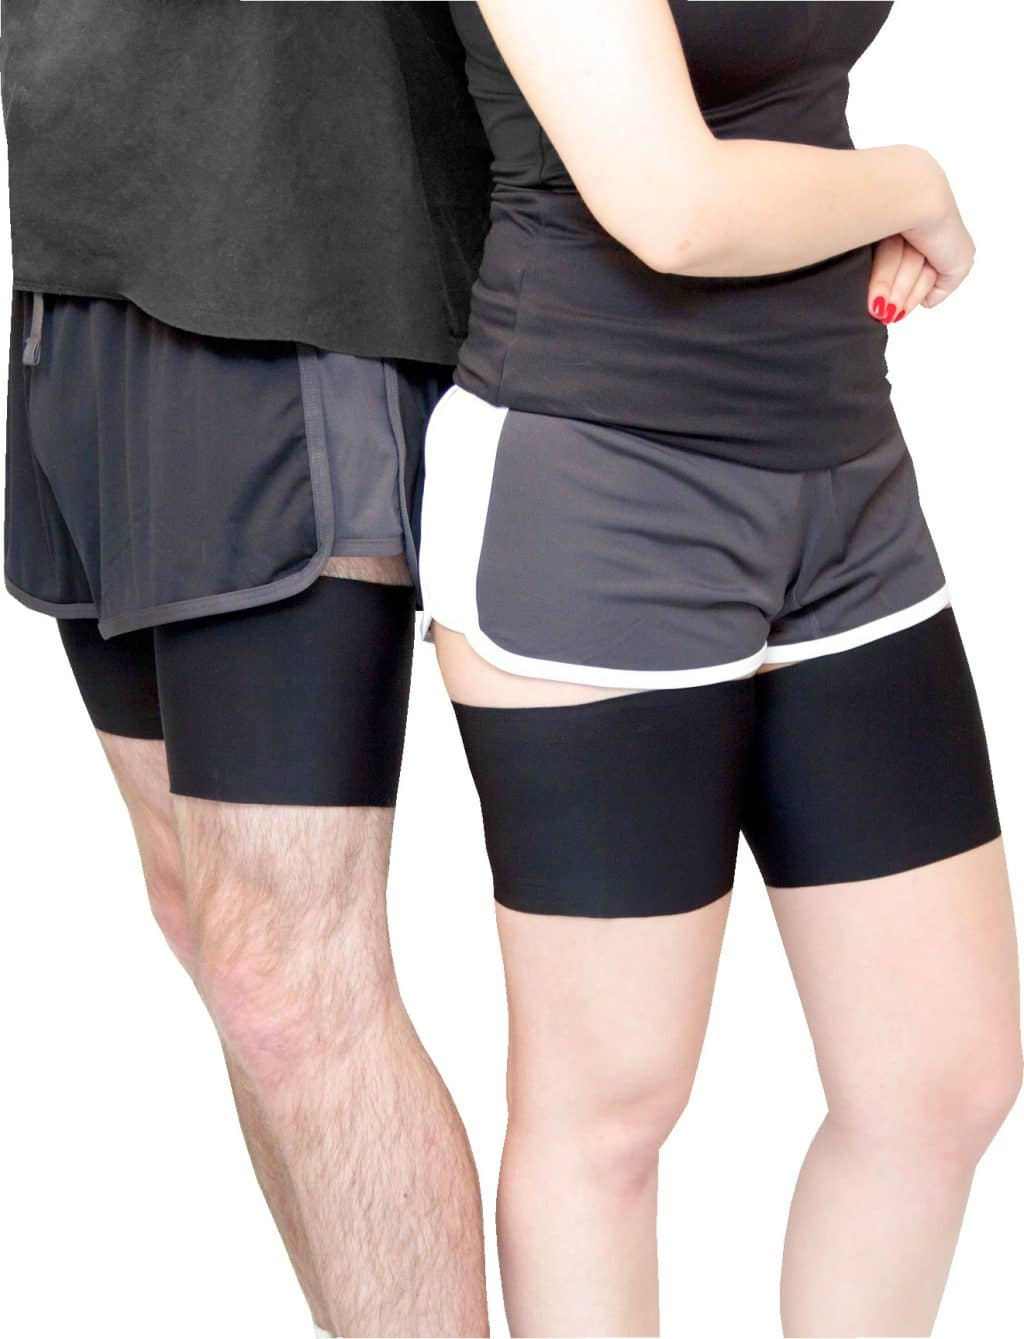 Man and Woman Bandelettes Anti-Chafing Thigh Bands